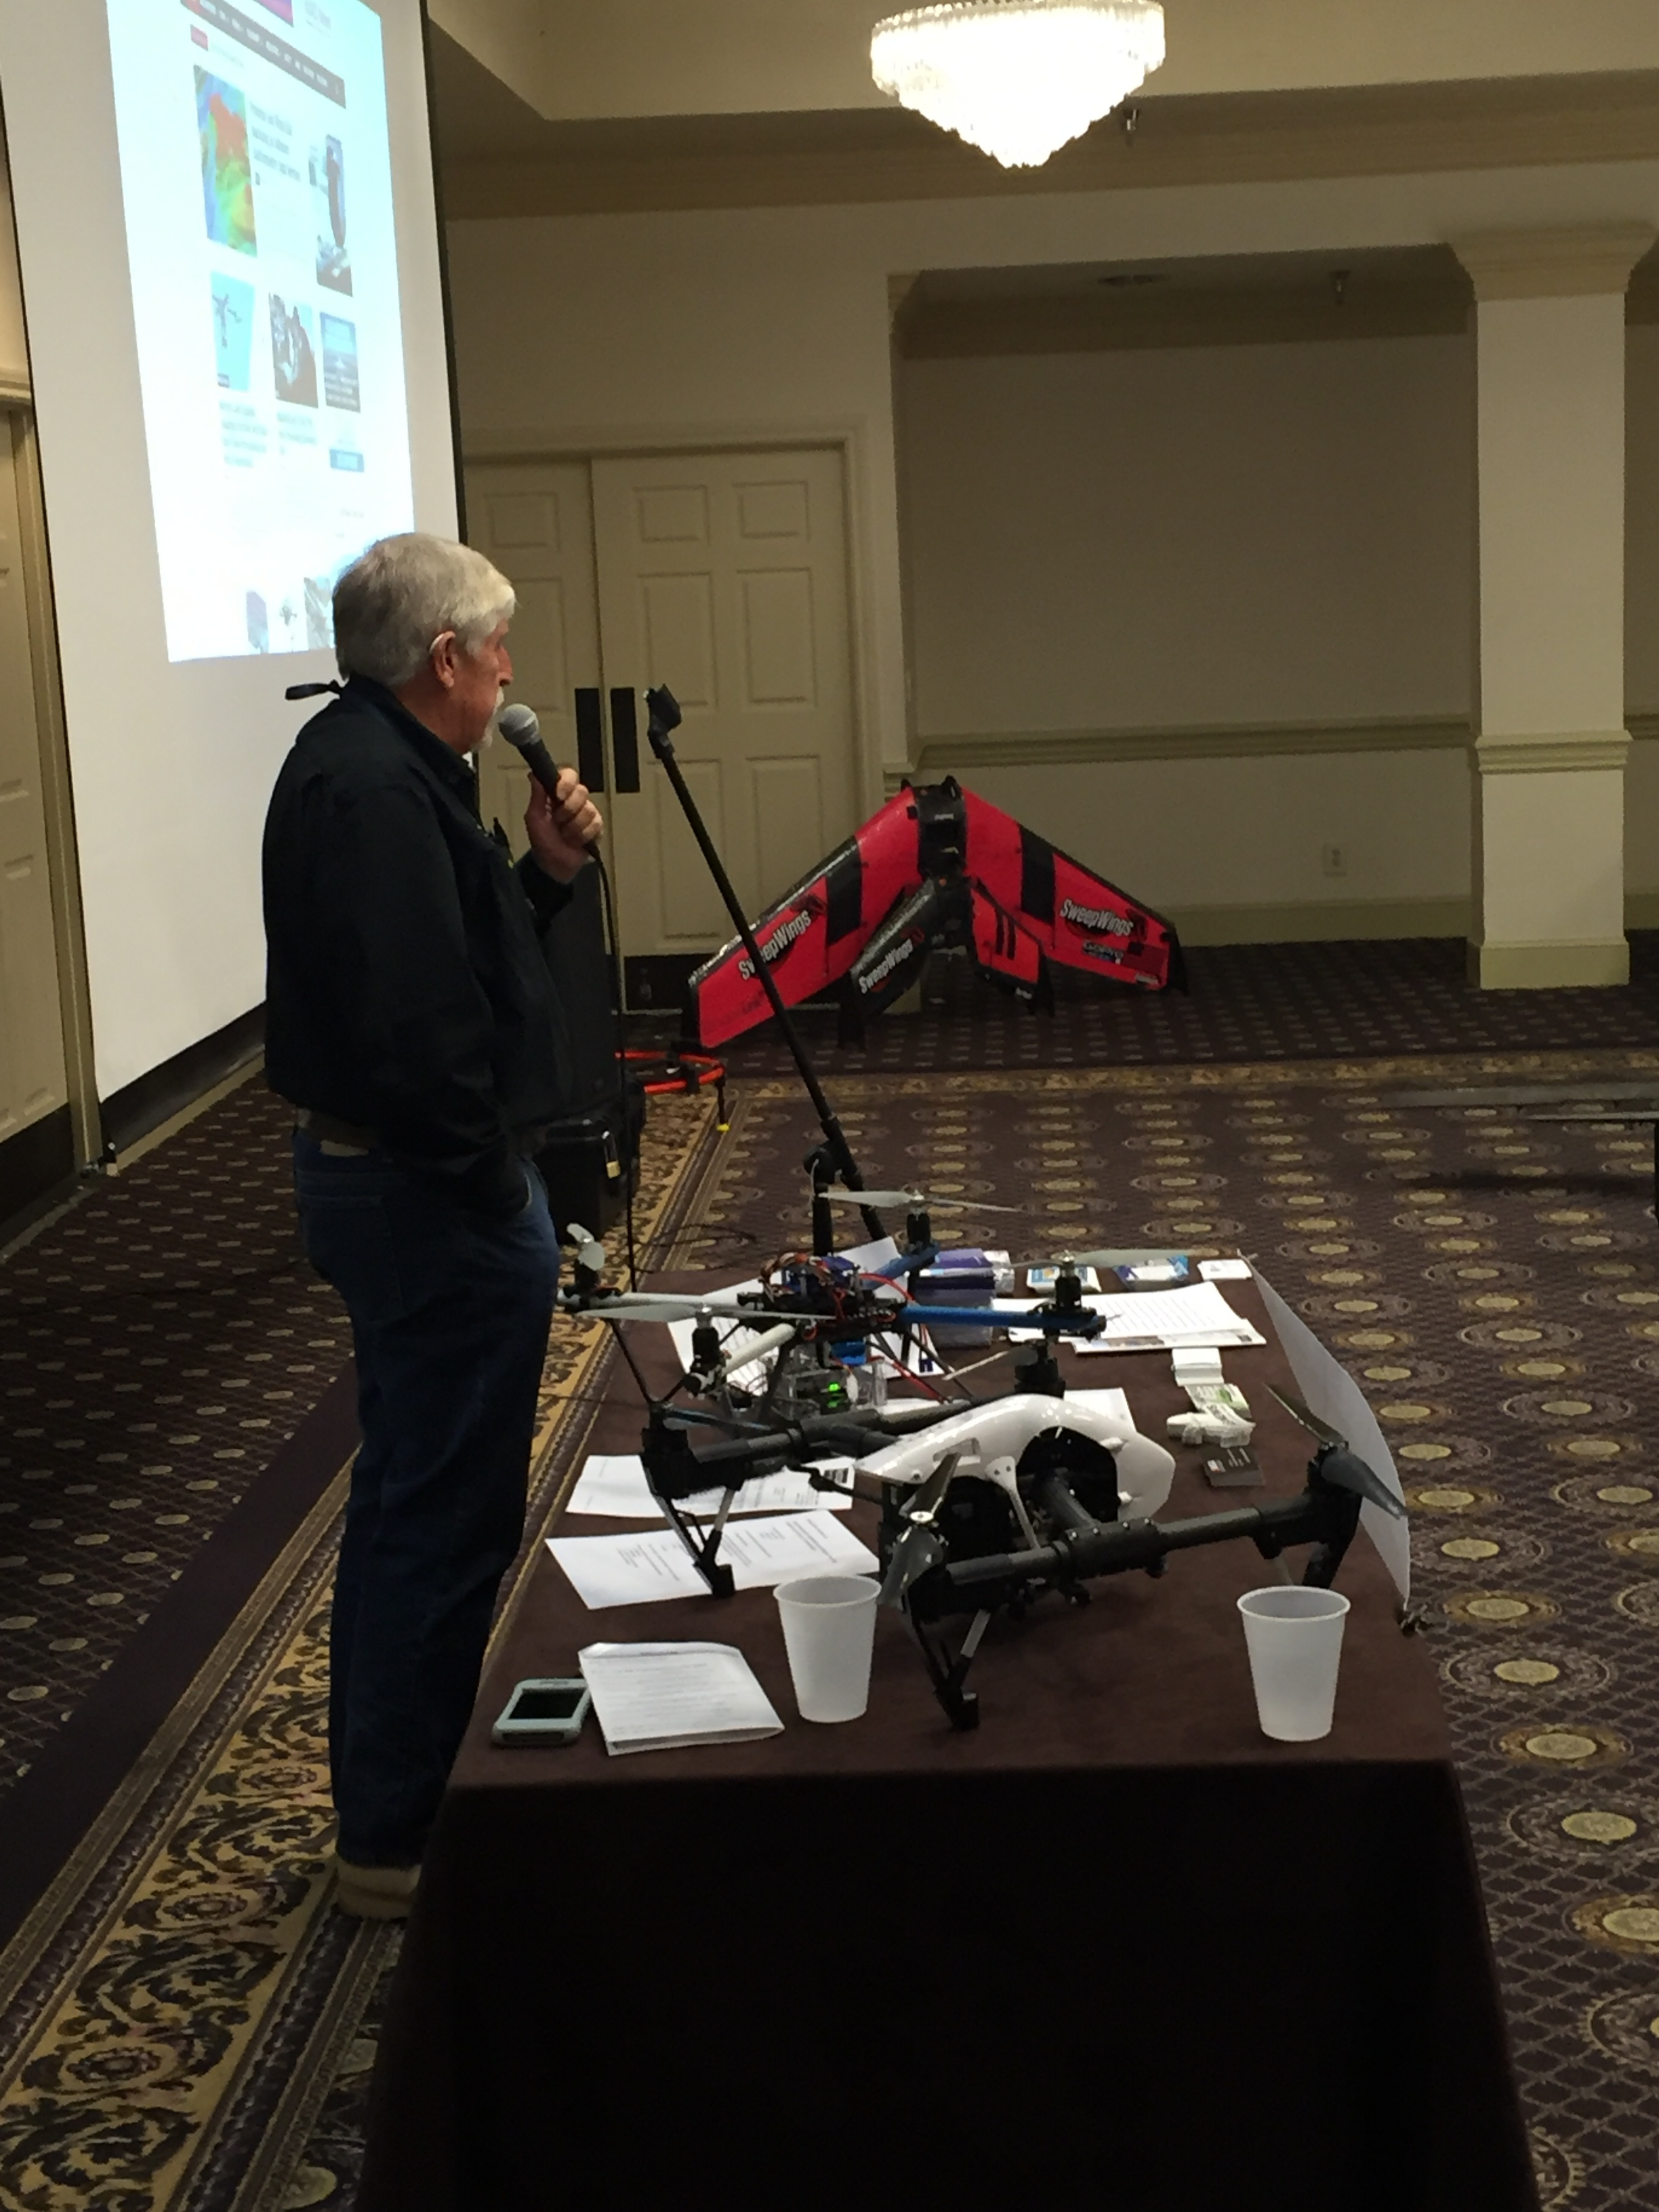 Bruce Parks, President of Drone Pilots Federation, provides an overview of the broad scopes and benefits of drone technology applications in our society. In the background are two flying wings that are designed, built, and flown by one of the other speakers at the event.